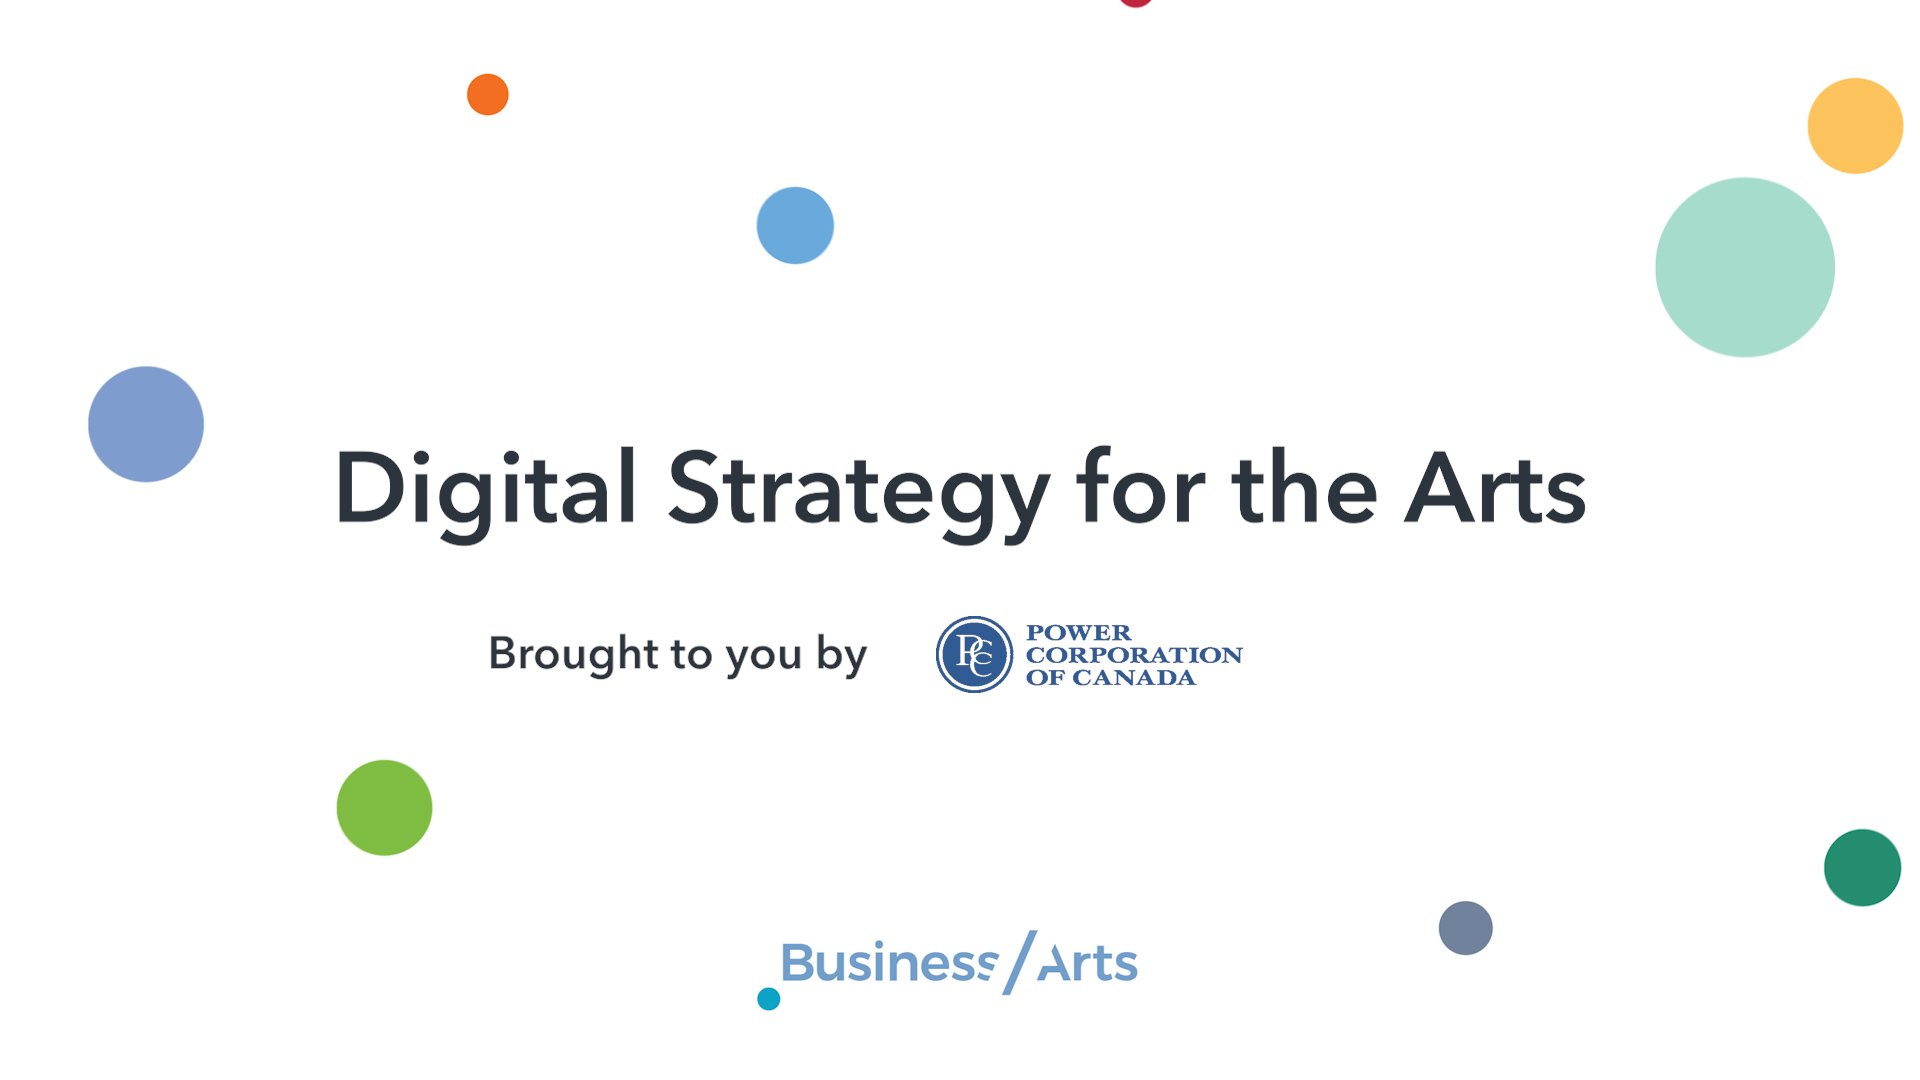 Digital Strategy for the Arts